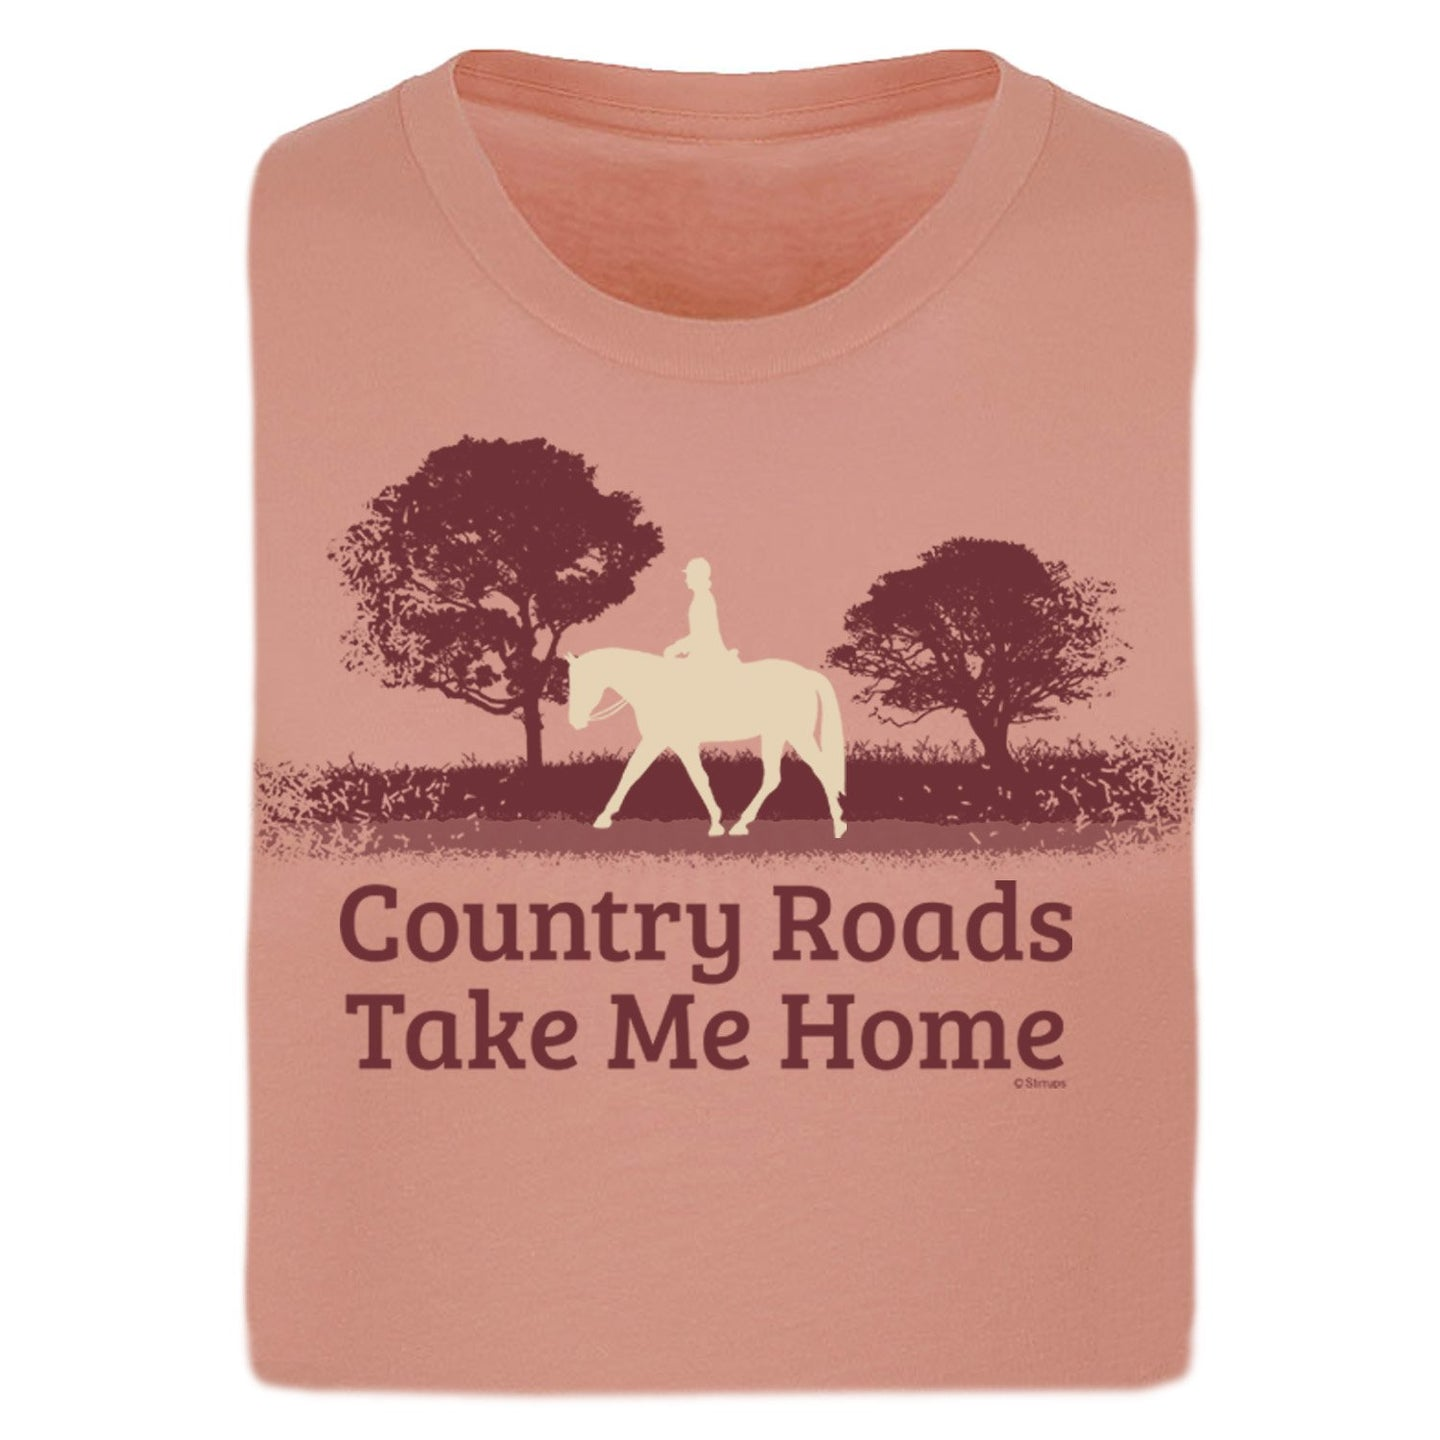 Country Roads Ladies Short Sleeve Tee 20104